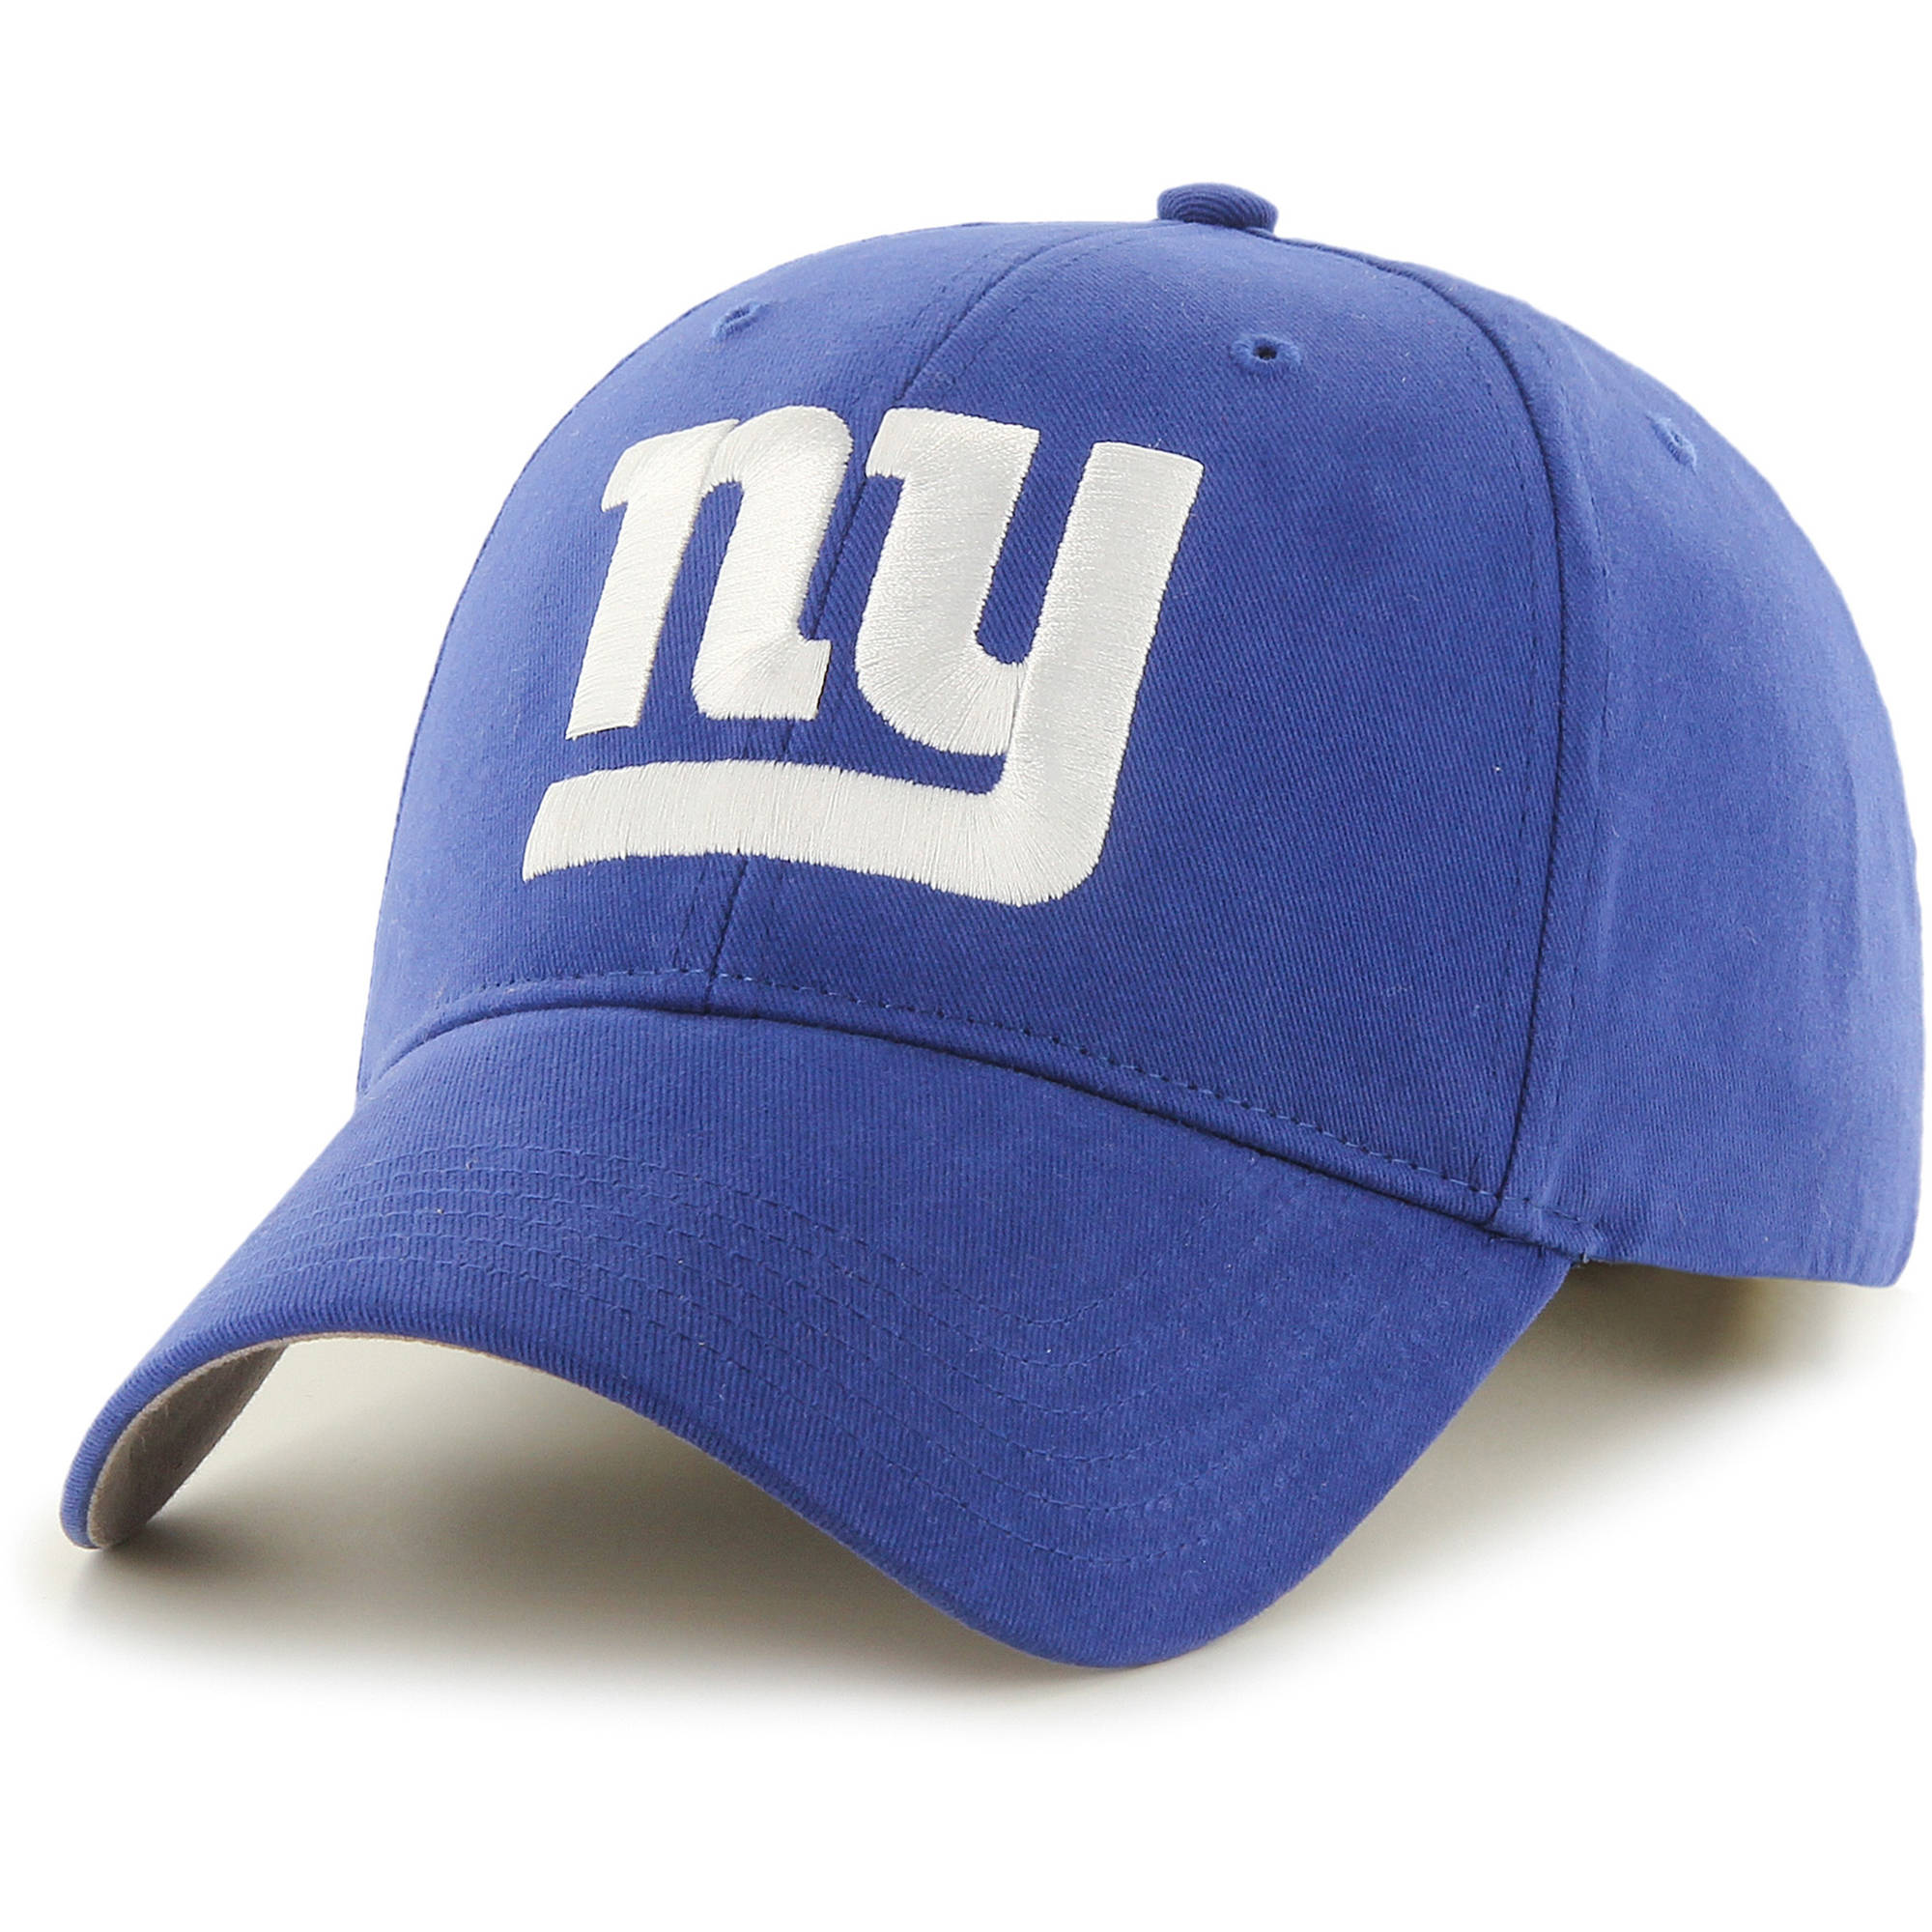 NFL New York Giants Basic Cap   Hat by Fan Favorite - Walmart.com 50d9f1dd633